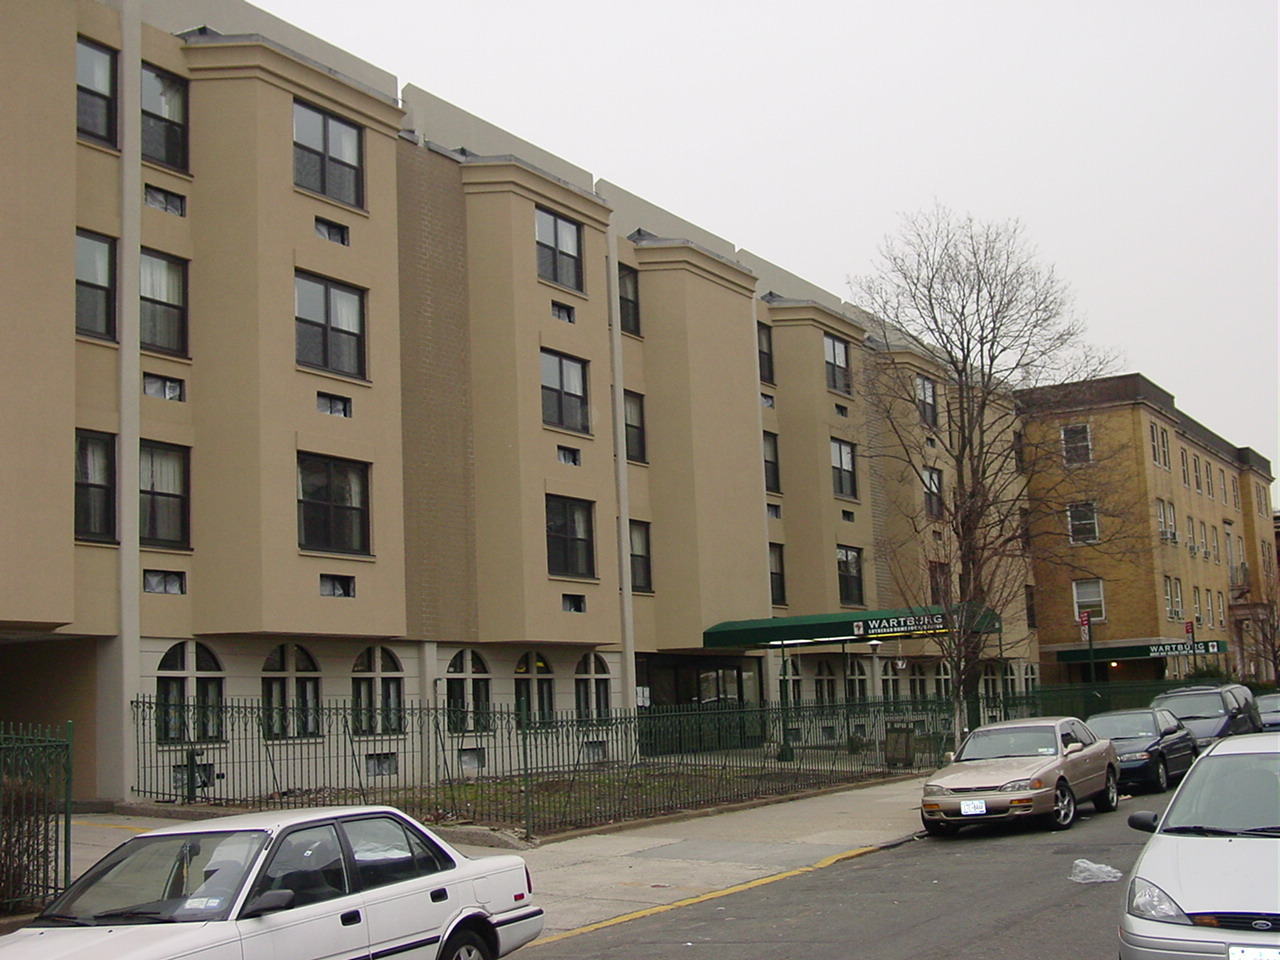 Wartburg Nursing Home Brooklyn, NY